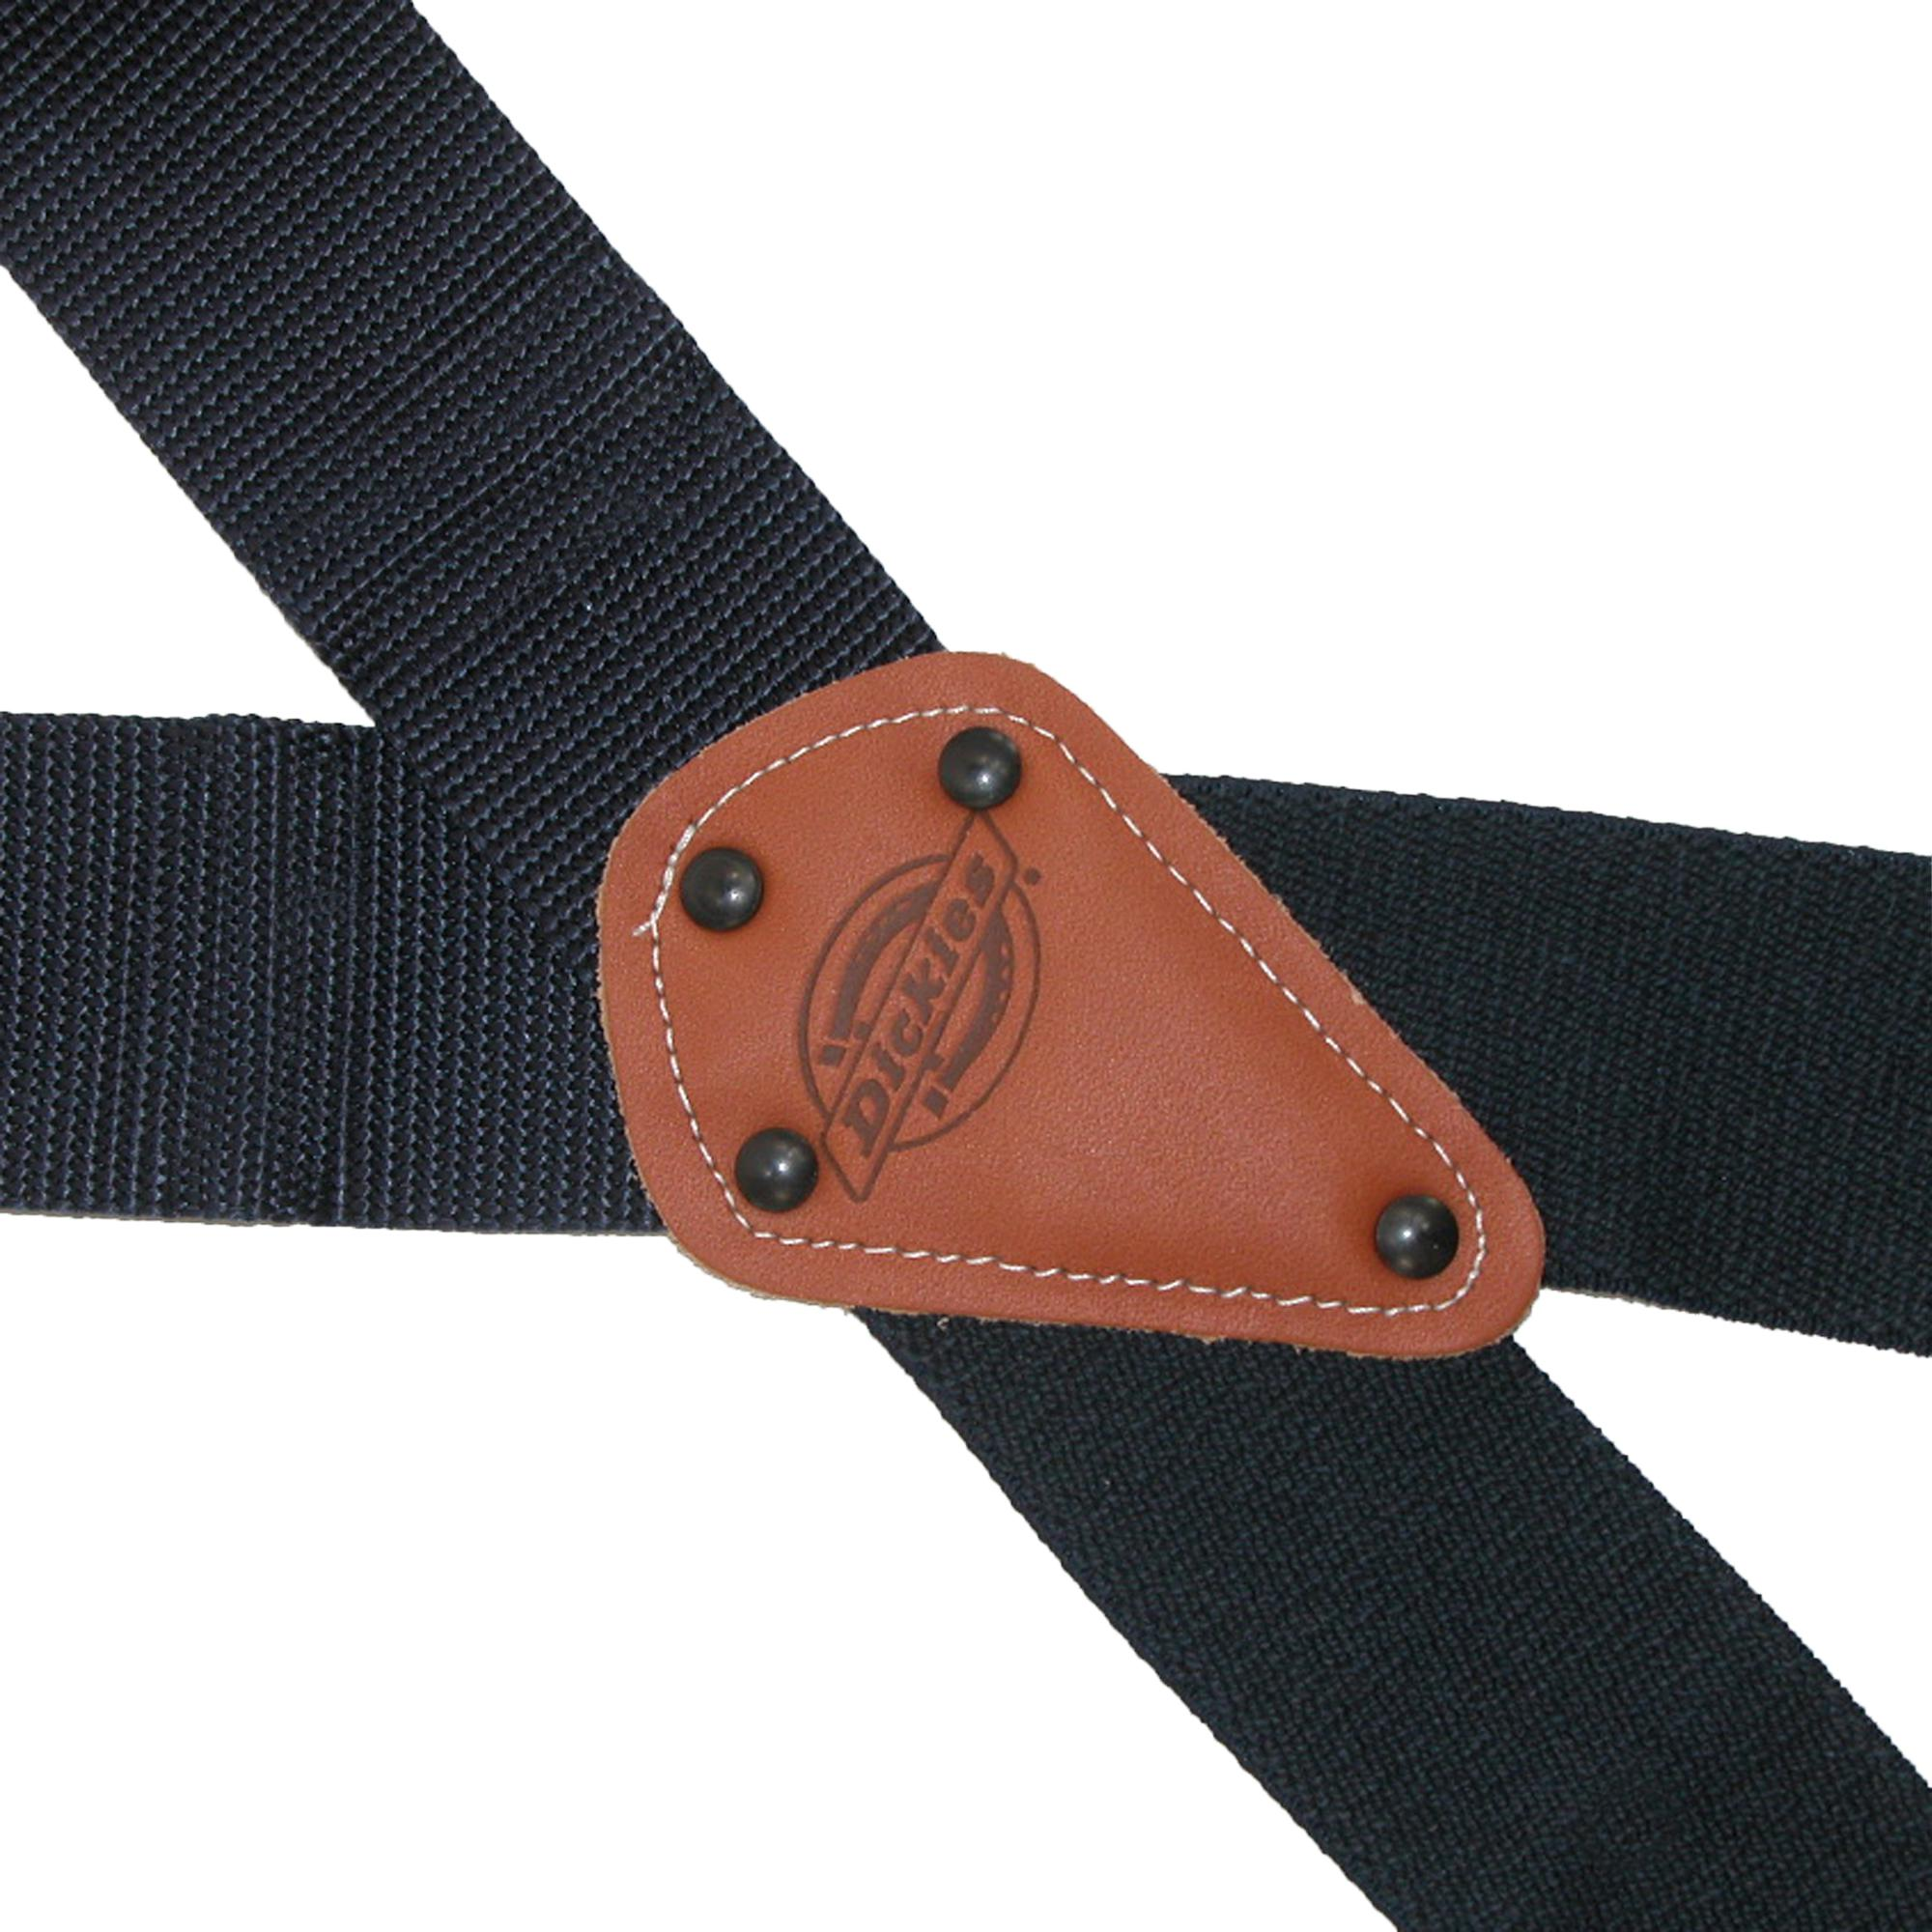 New Dickies Men/'s Industrial Strength Ballistic Nylon Clip End Work Suspenders